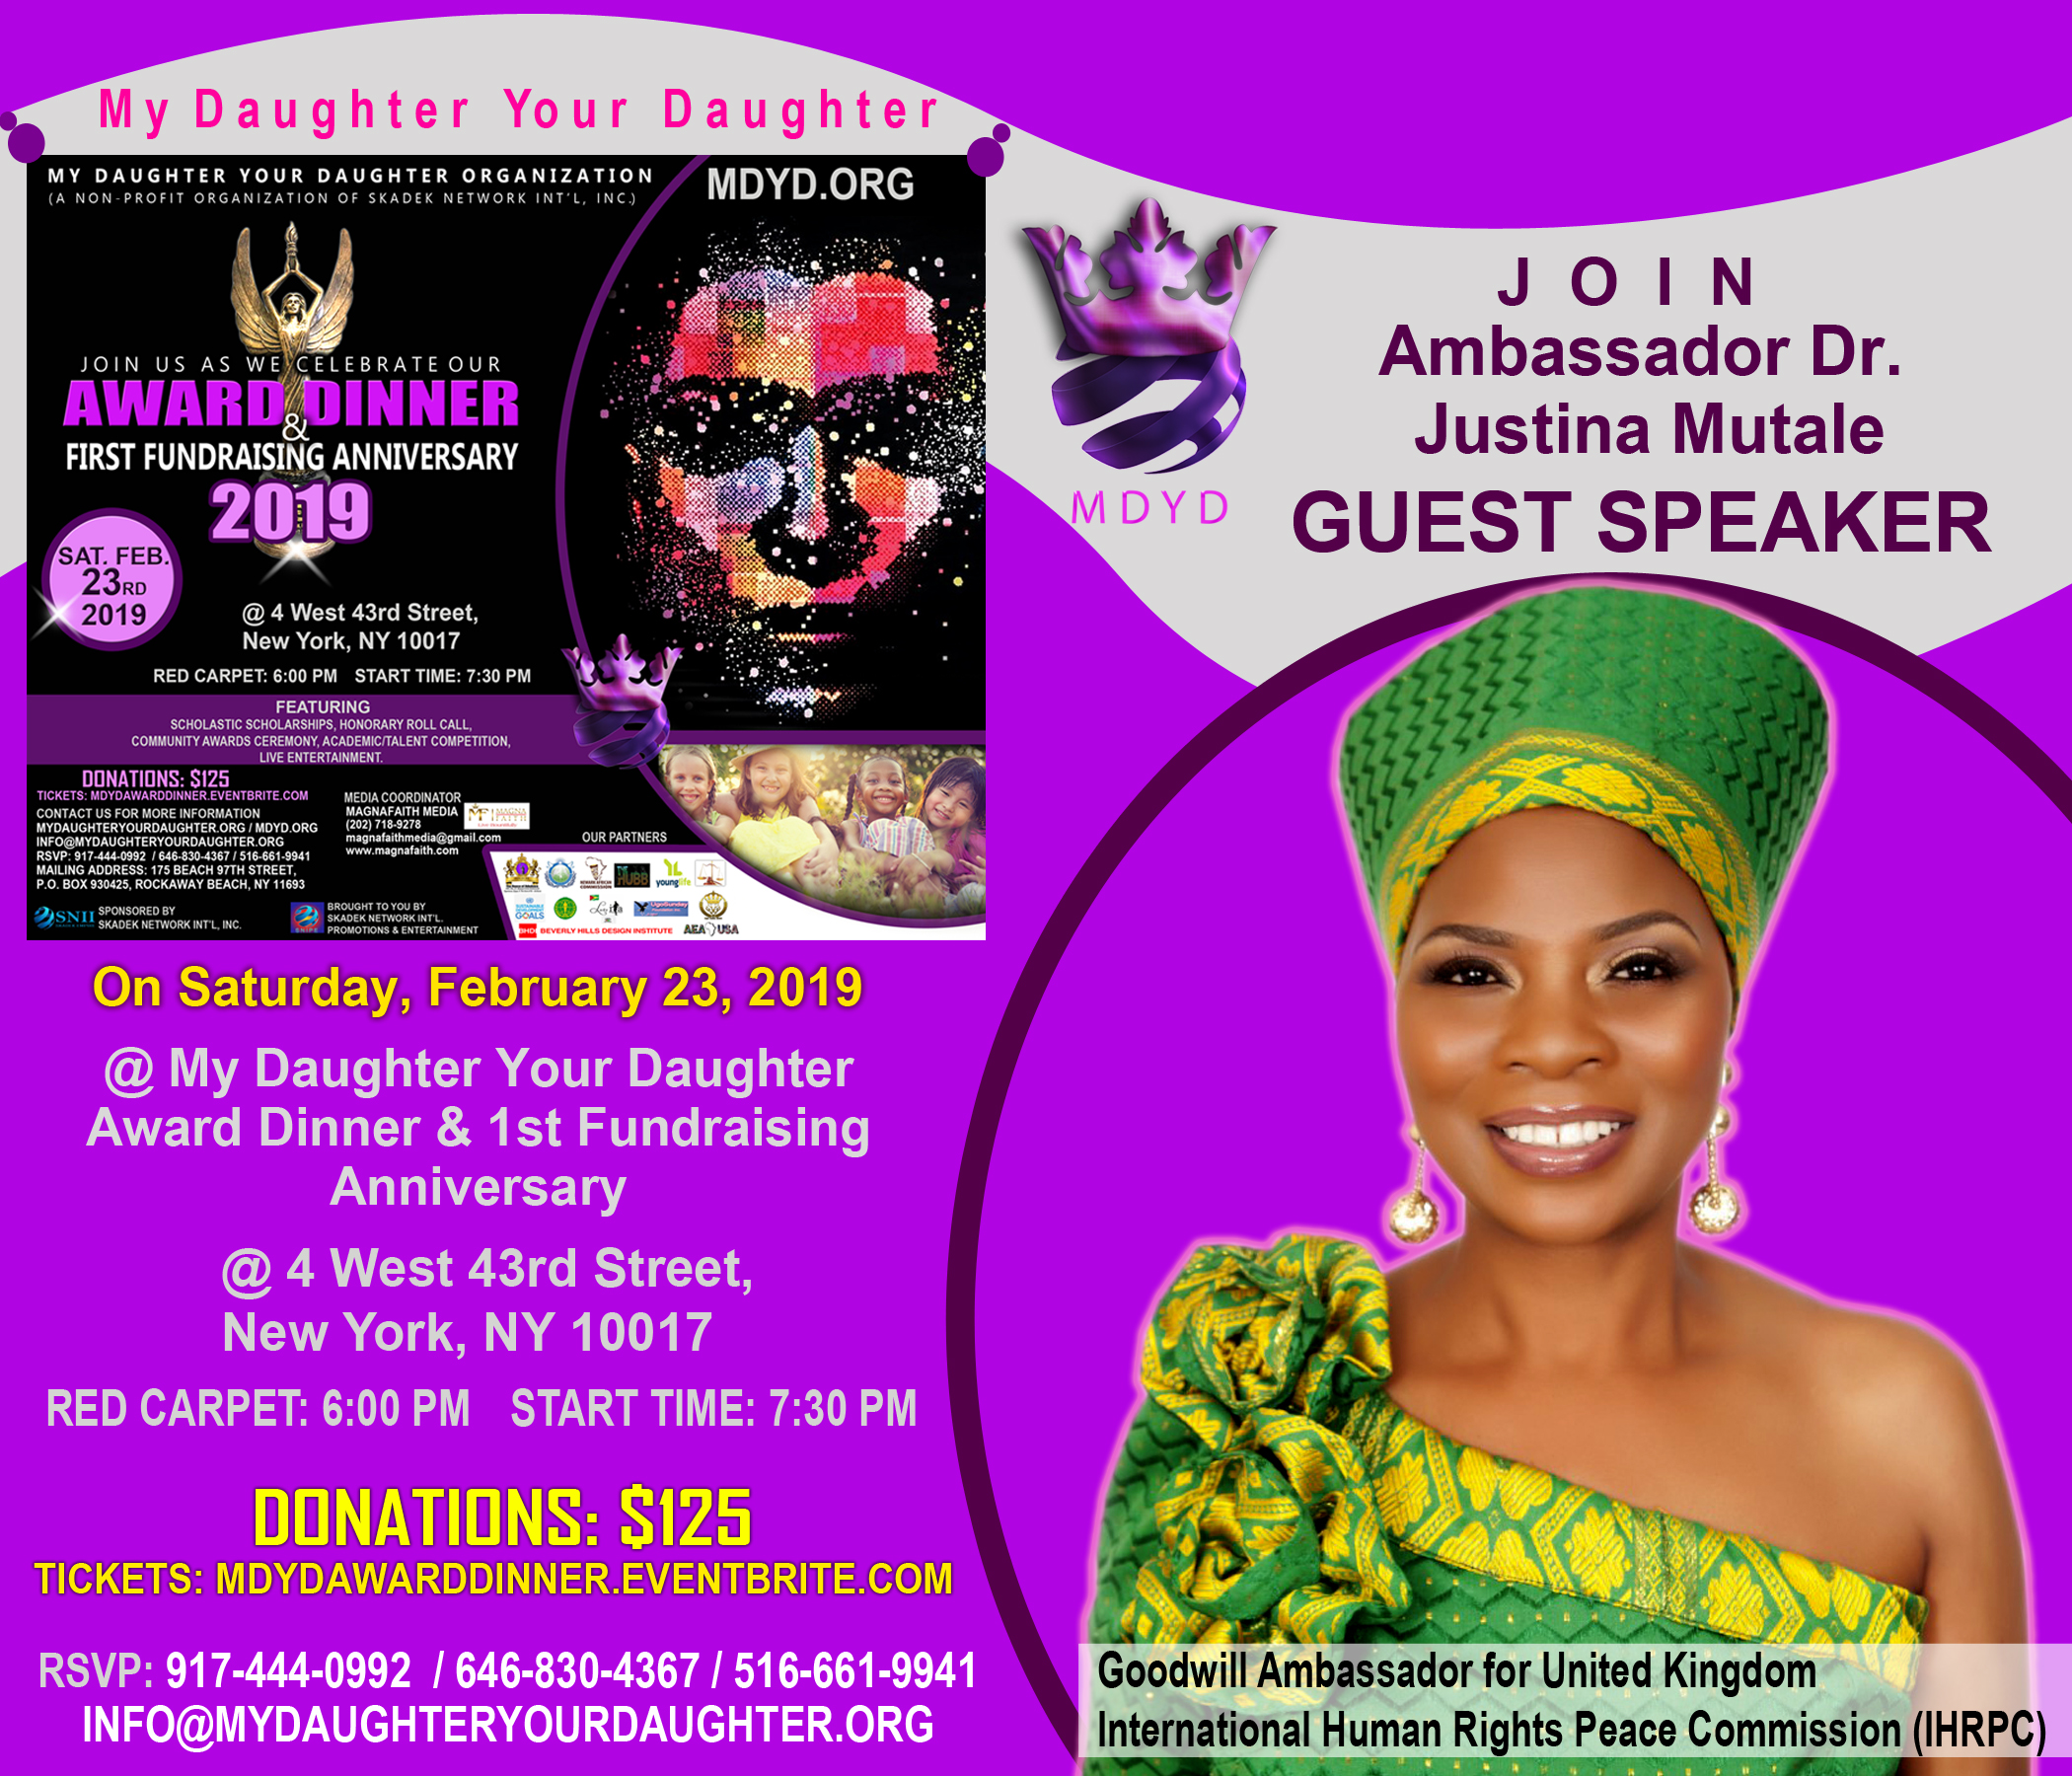 MDYD Promo Card - Amb. Dr. Justina Mutale